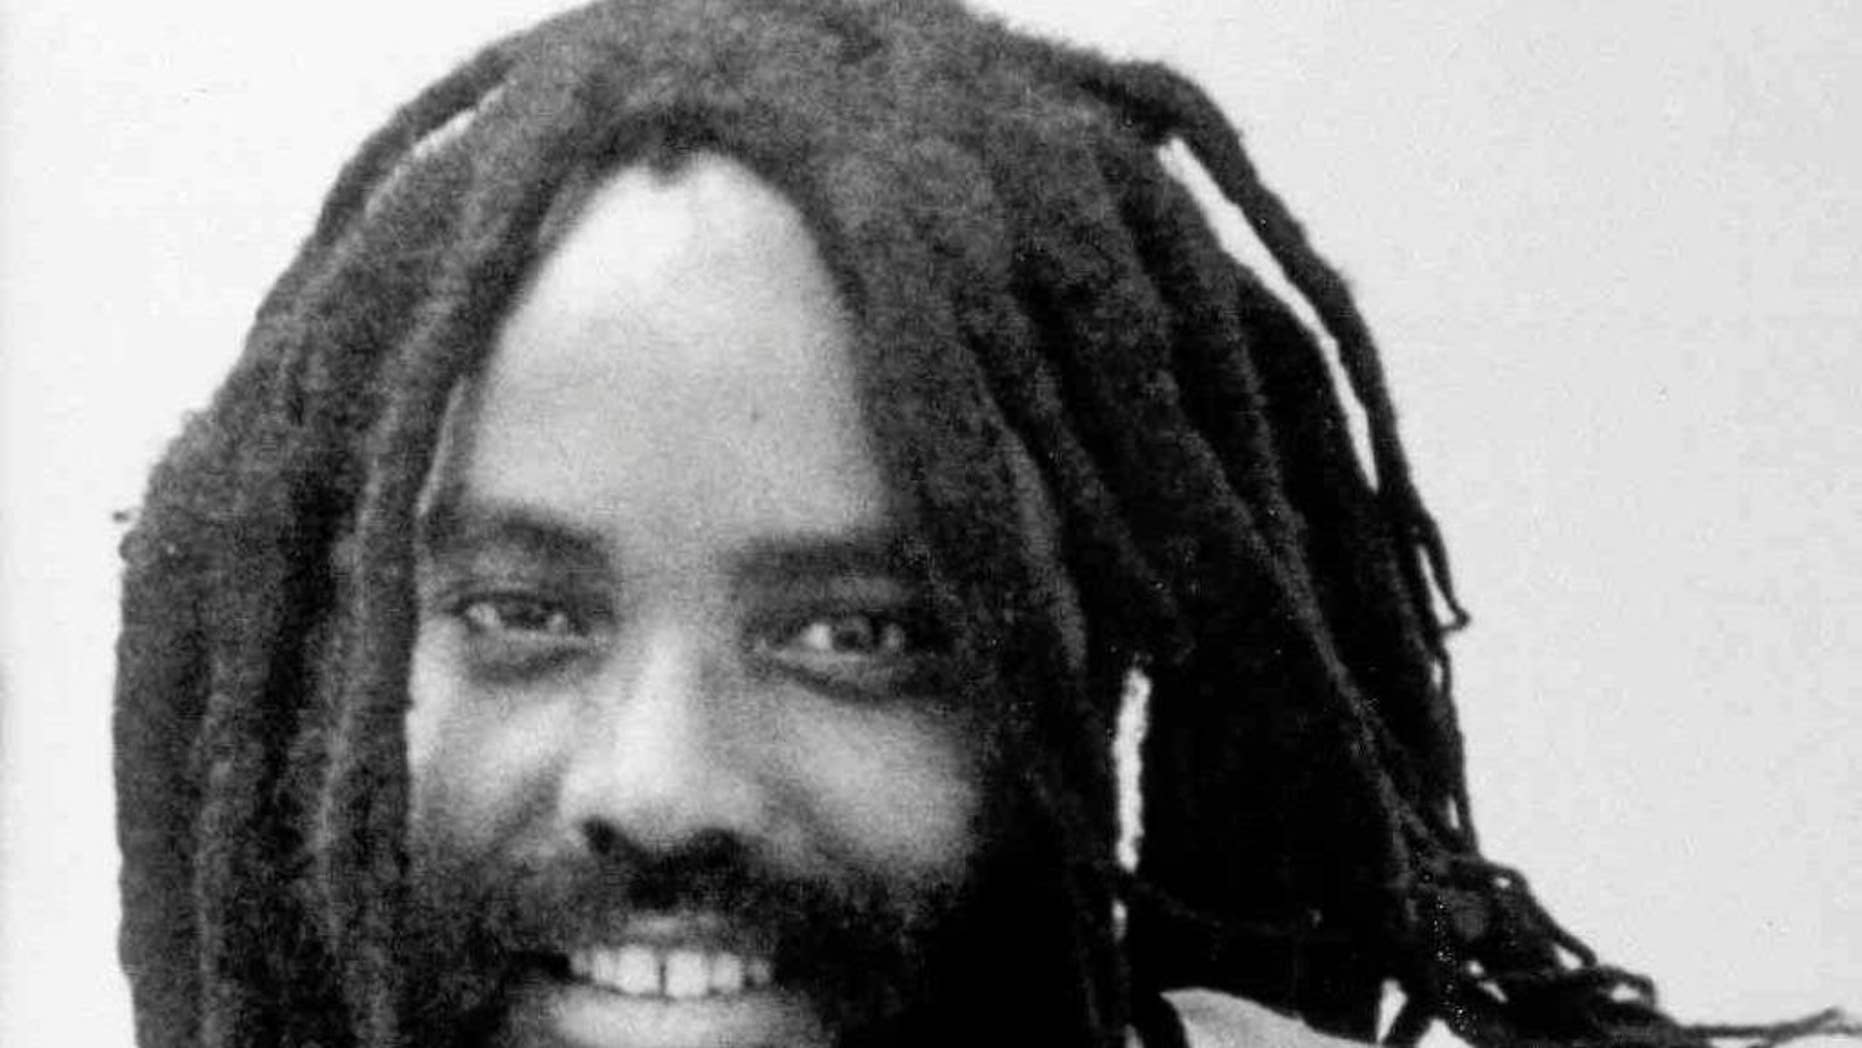 """FILE -This undated file photo shows convicted police killer Mumia Abu-Jamal. Former death row inmate Mumia Abu-Jamal will get a chance to tell a federal judge that his medical care for hepatitis C and other health problems has been inadequate. Claiming prison officials have shown  """"deliberate indifference"""" to his health, former death row inmate Mumia Abu-Jamal will get a chance to argue his case before a federal judge on Friday, Dec. 18, 2015. (AP Photo/Jennifer E. Beach, File)"""